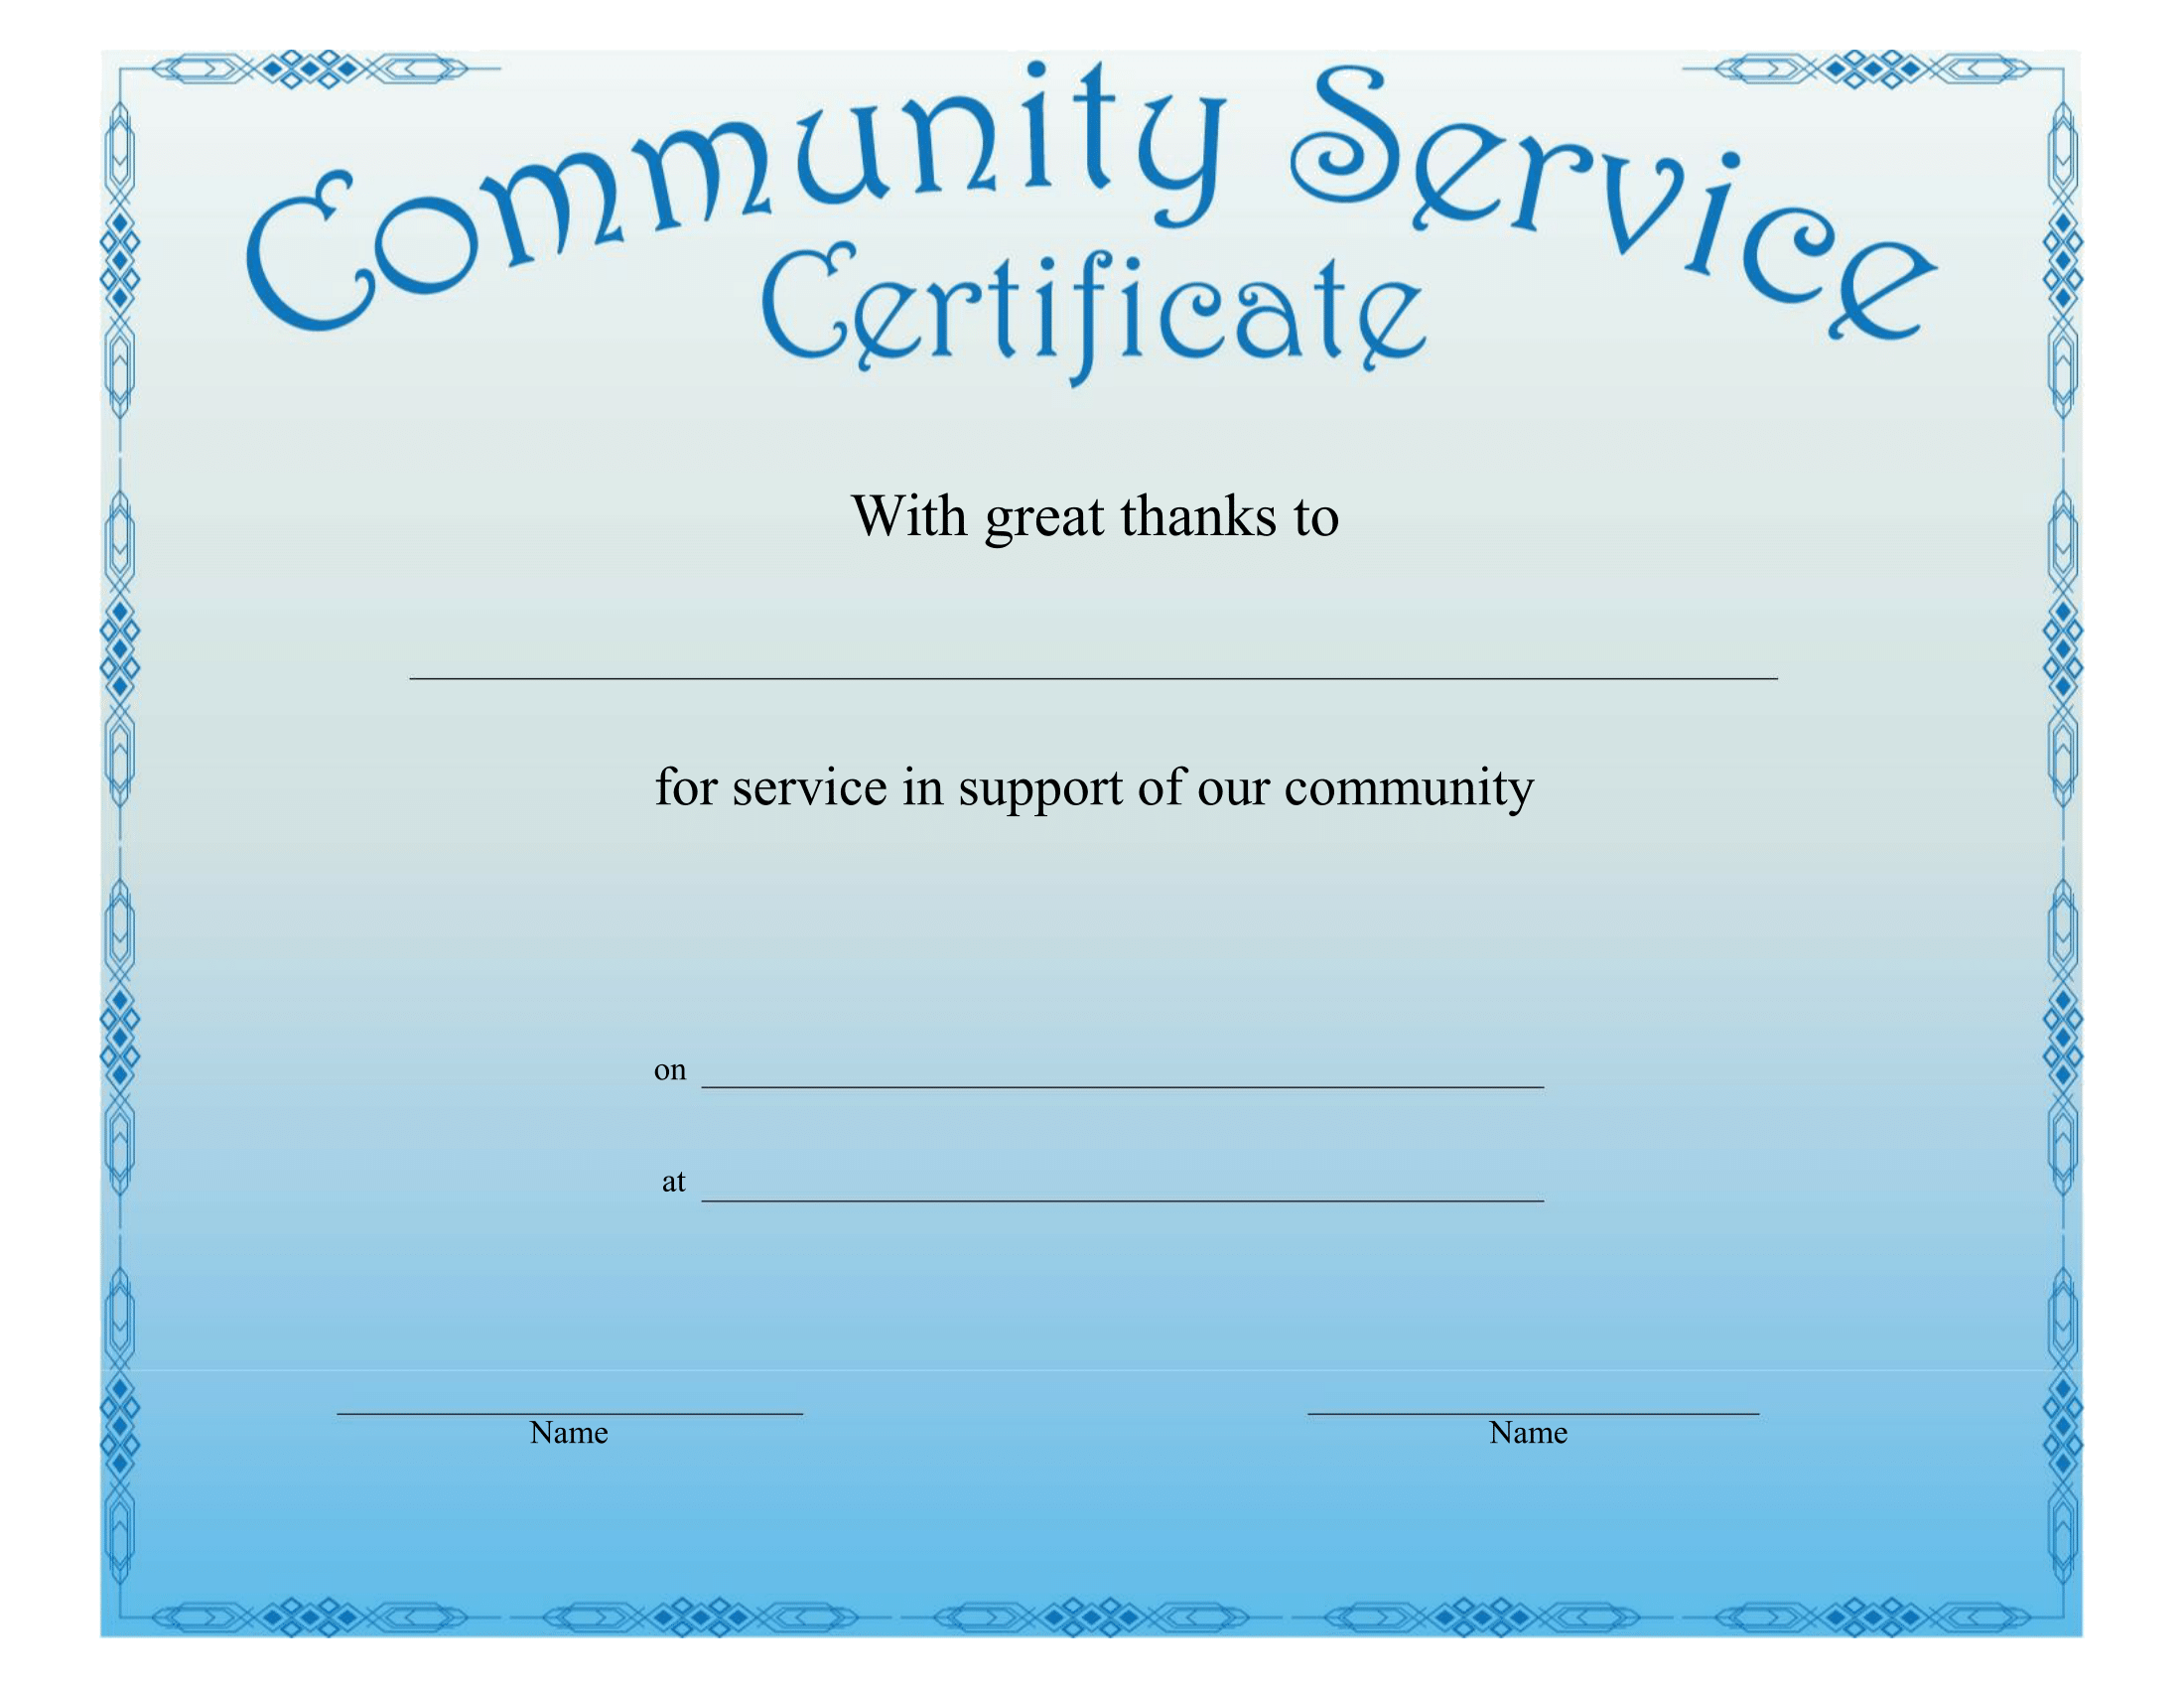 printable community service certificate free download